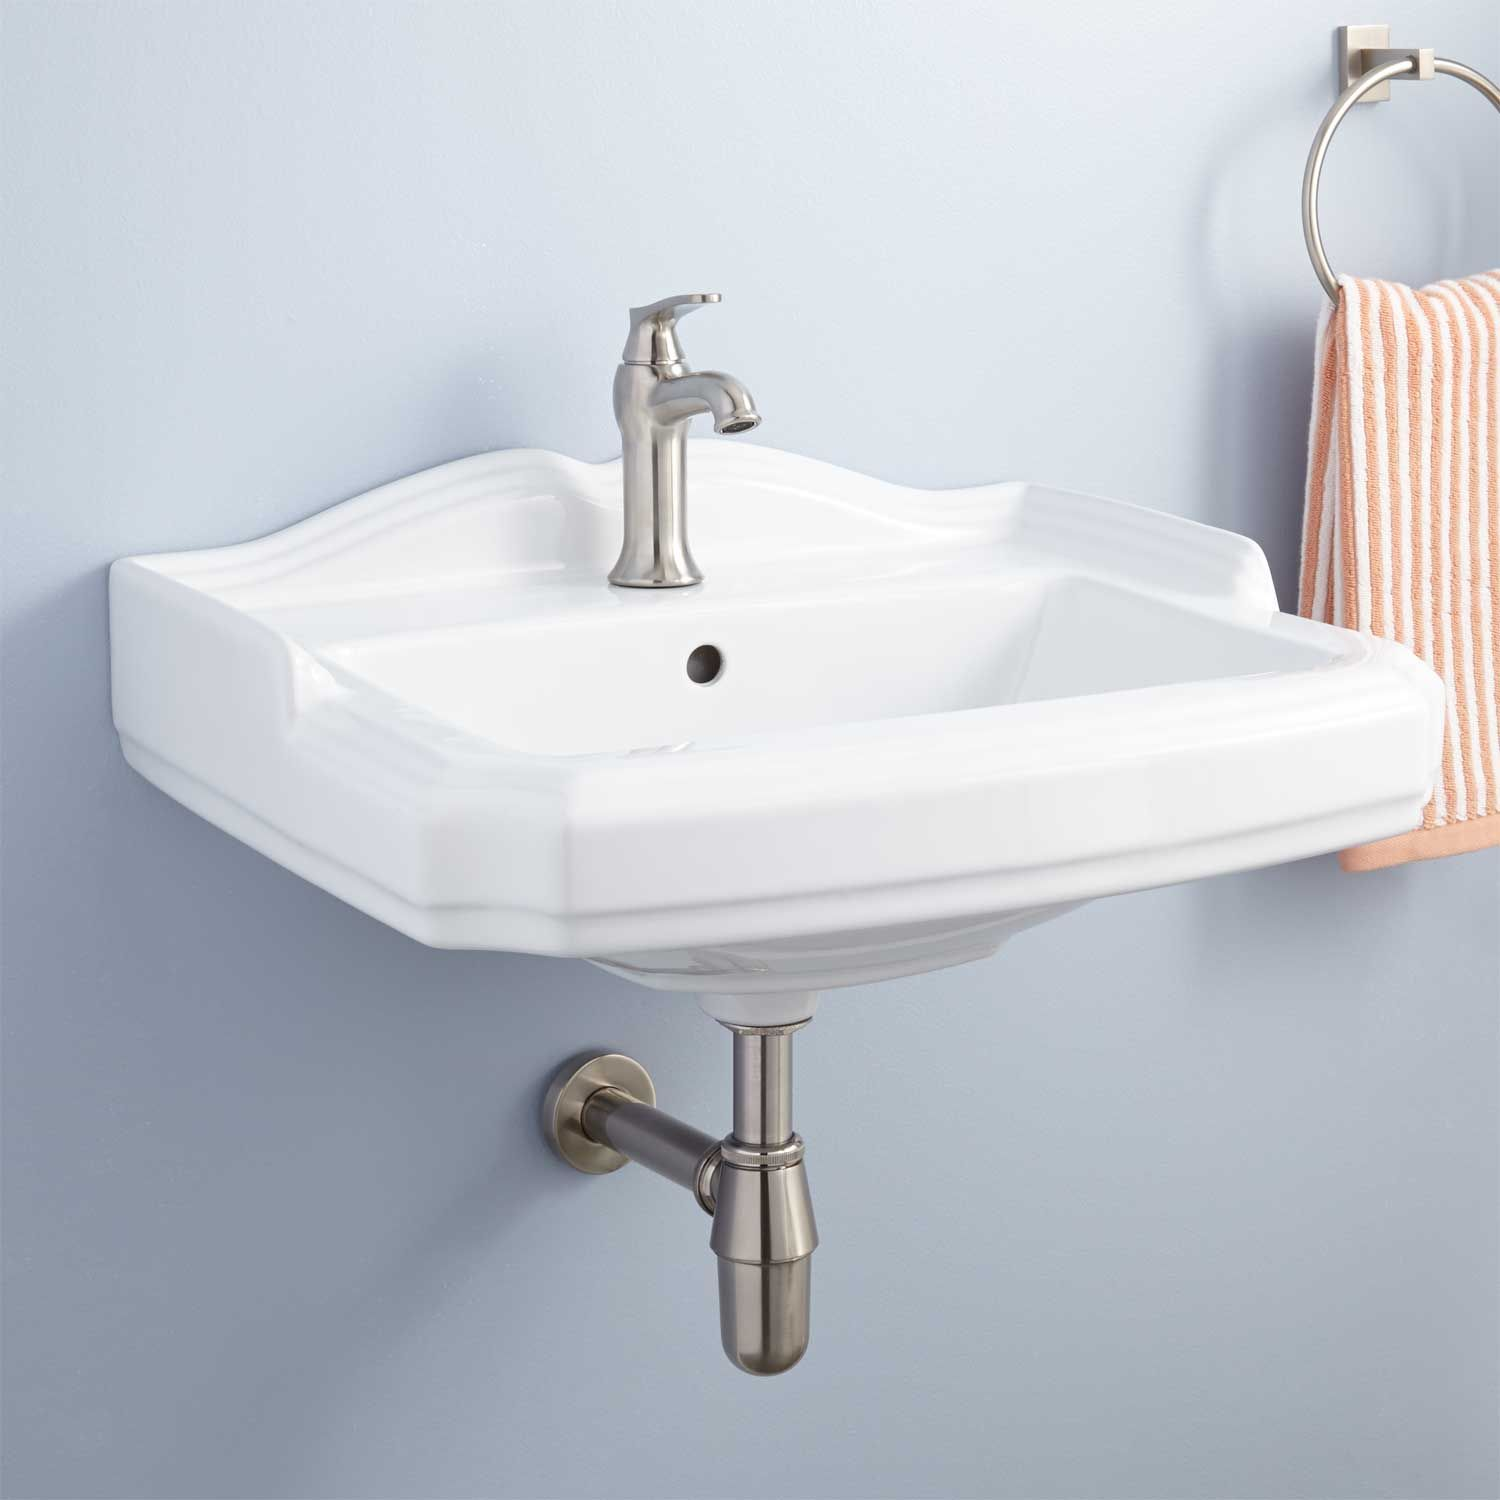 Halden Porcelain Wall Mount Bathroom Sink Wall Mounted Bathroom